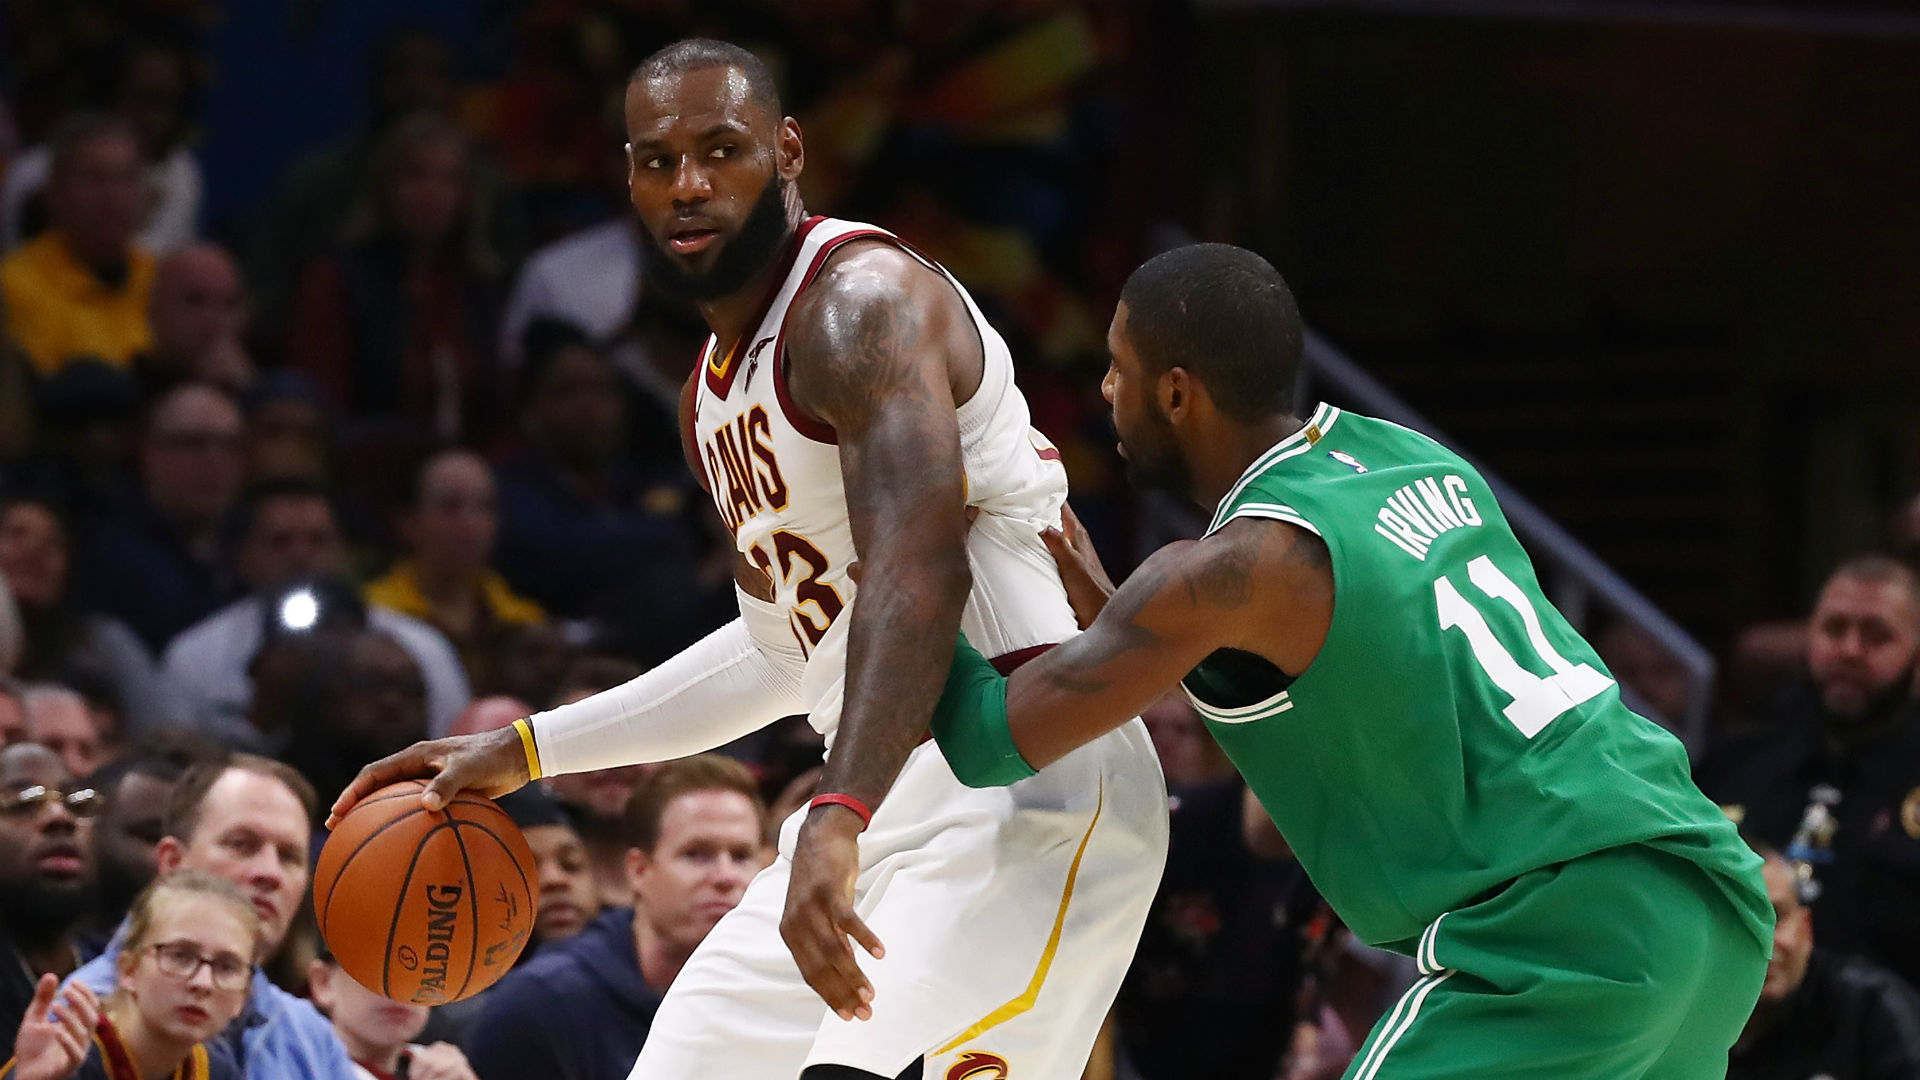 NBA schedule: Week of Jan. 1 games include Cavs-Celtics, Warriors-Rockets